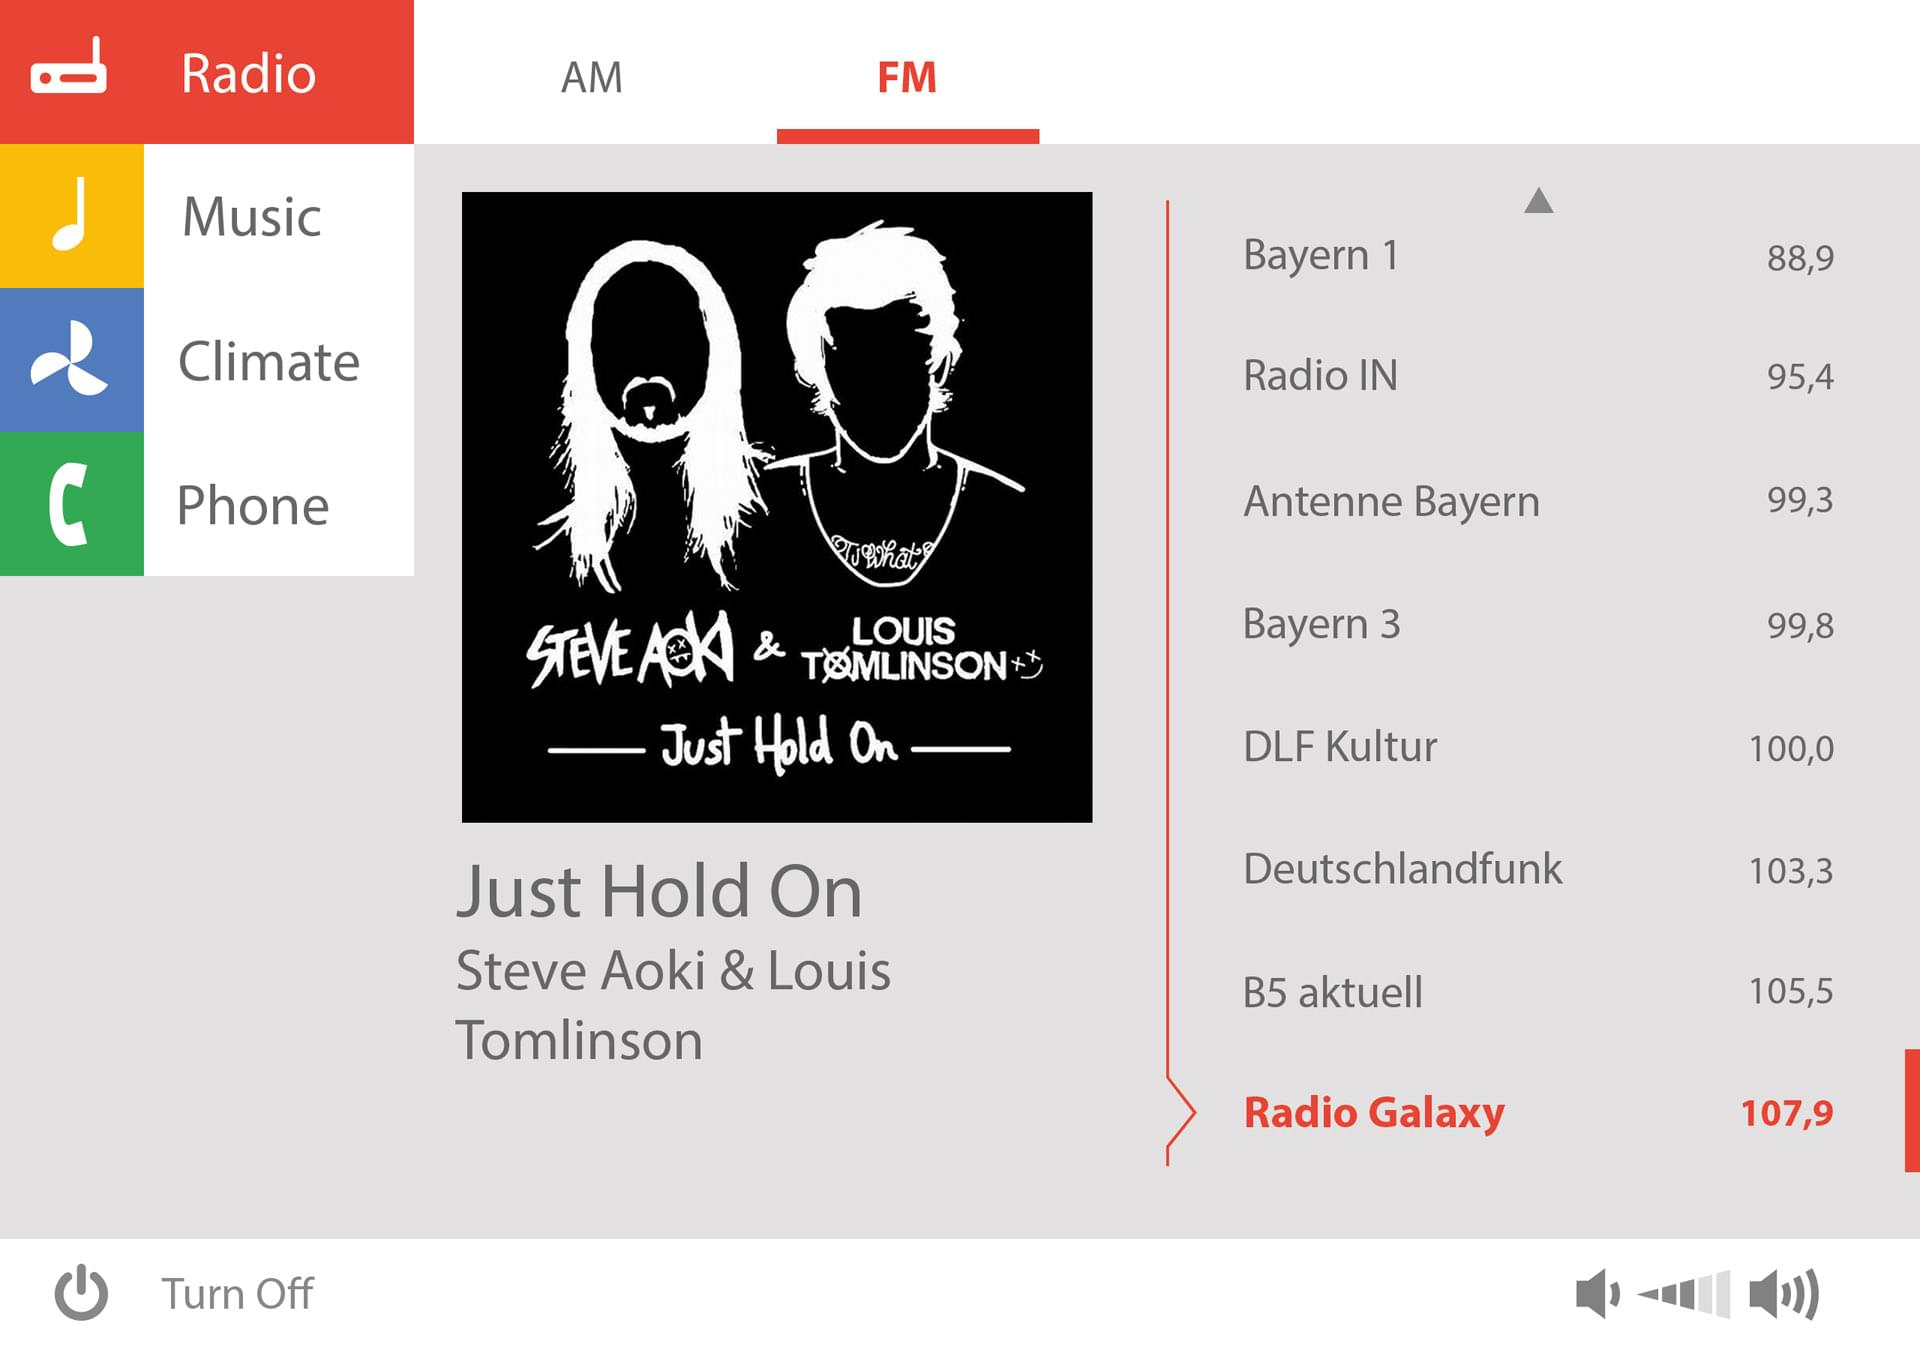 Screen Google – A radio channel is listened to.